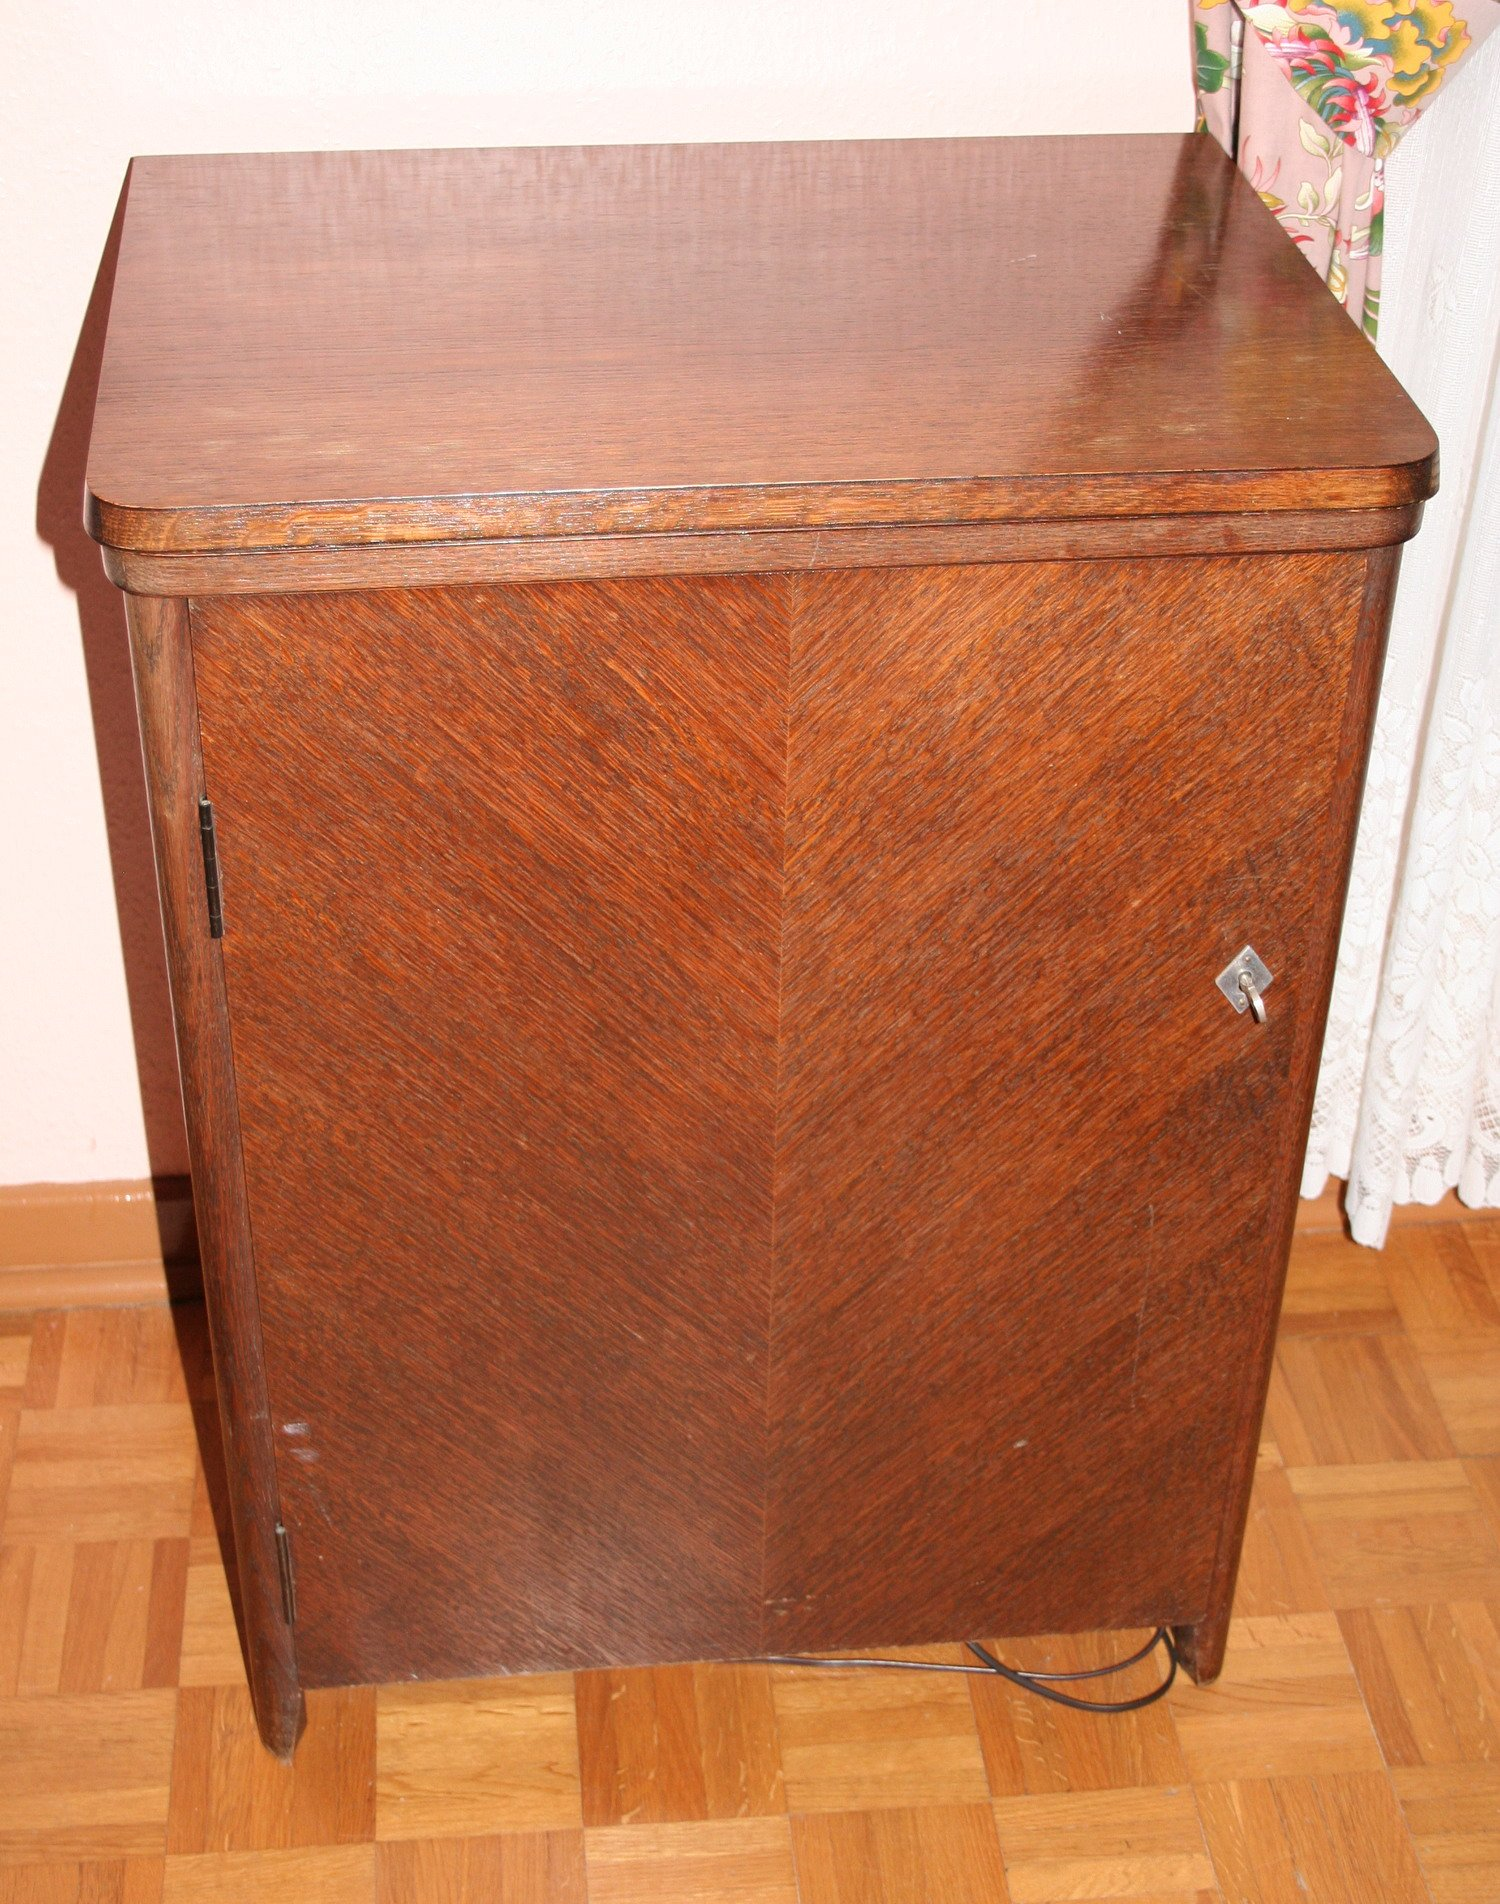 Vente de meubles machine coudre singer 191b 30 for Vente de meuble